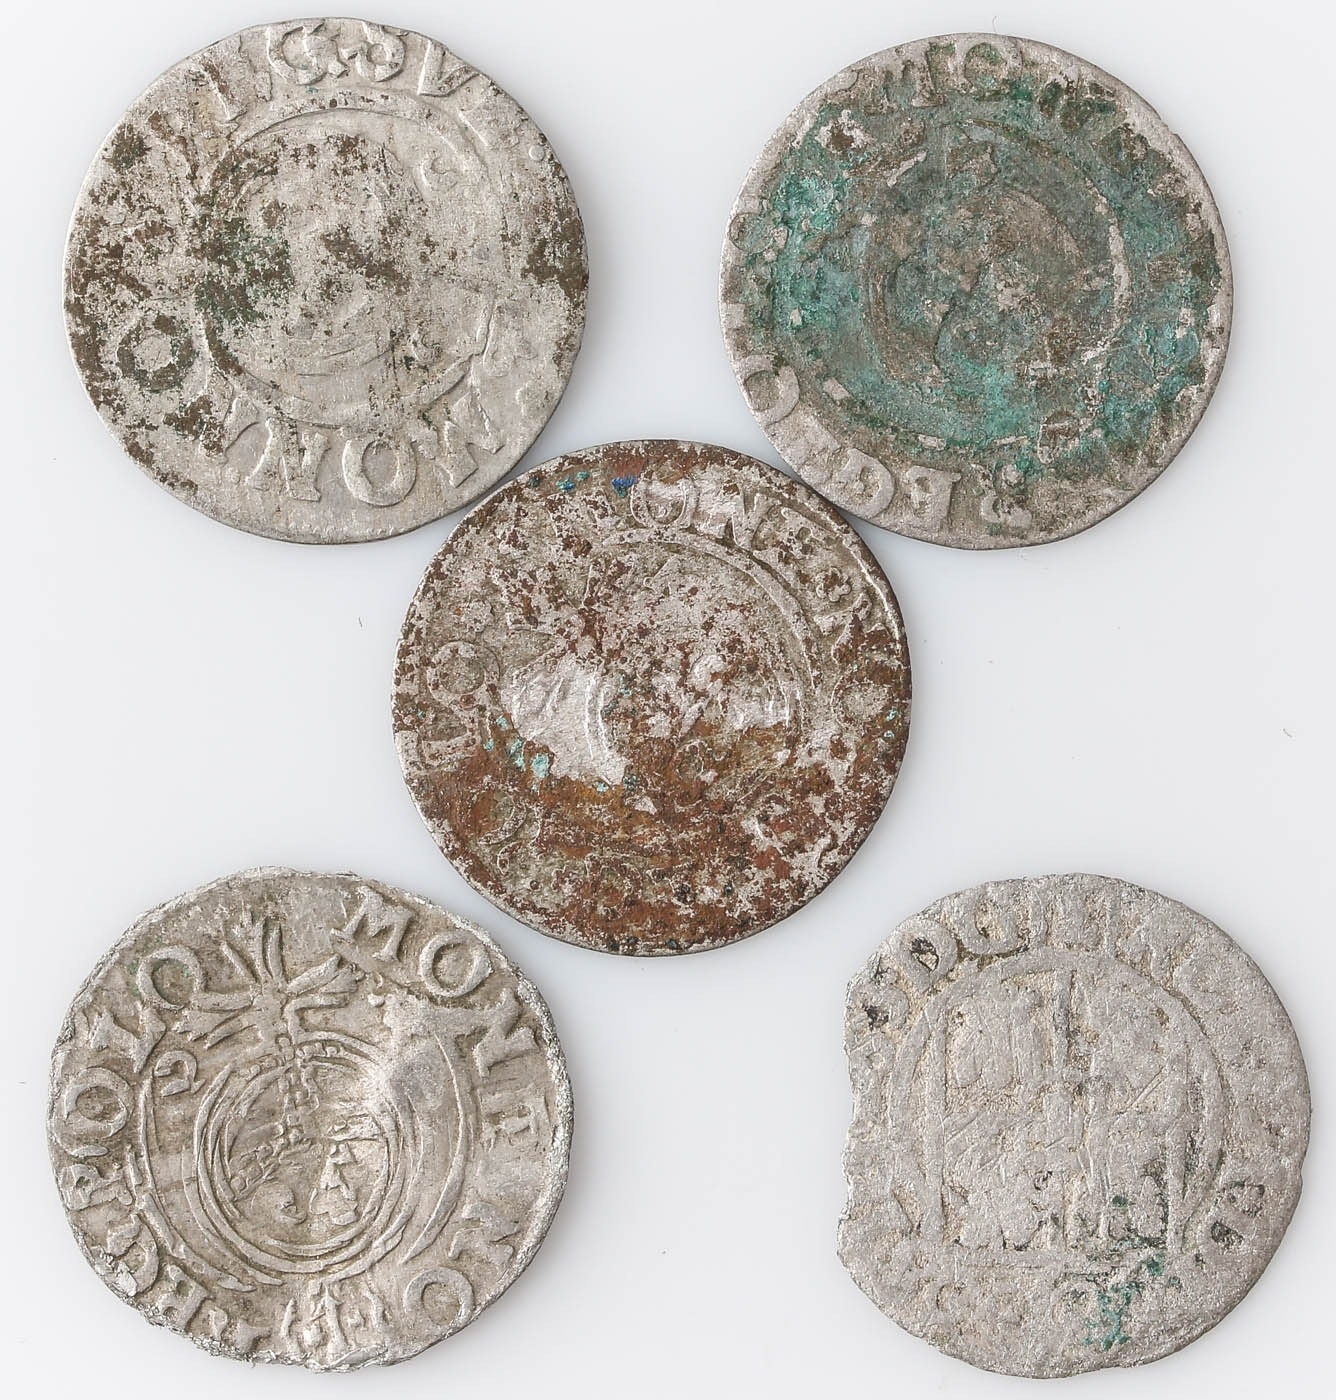 Group of Five 17th Century Polish–Lithuanian Commonwealth Silver Coins